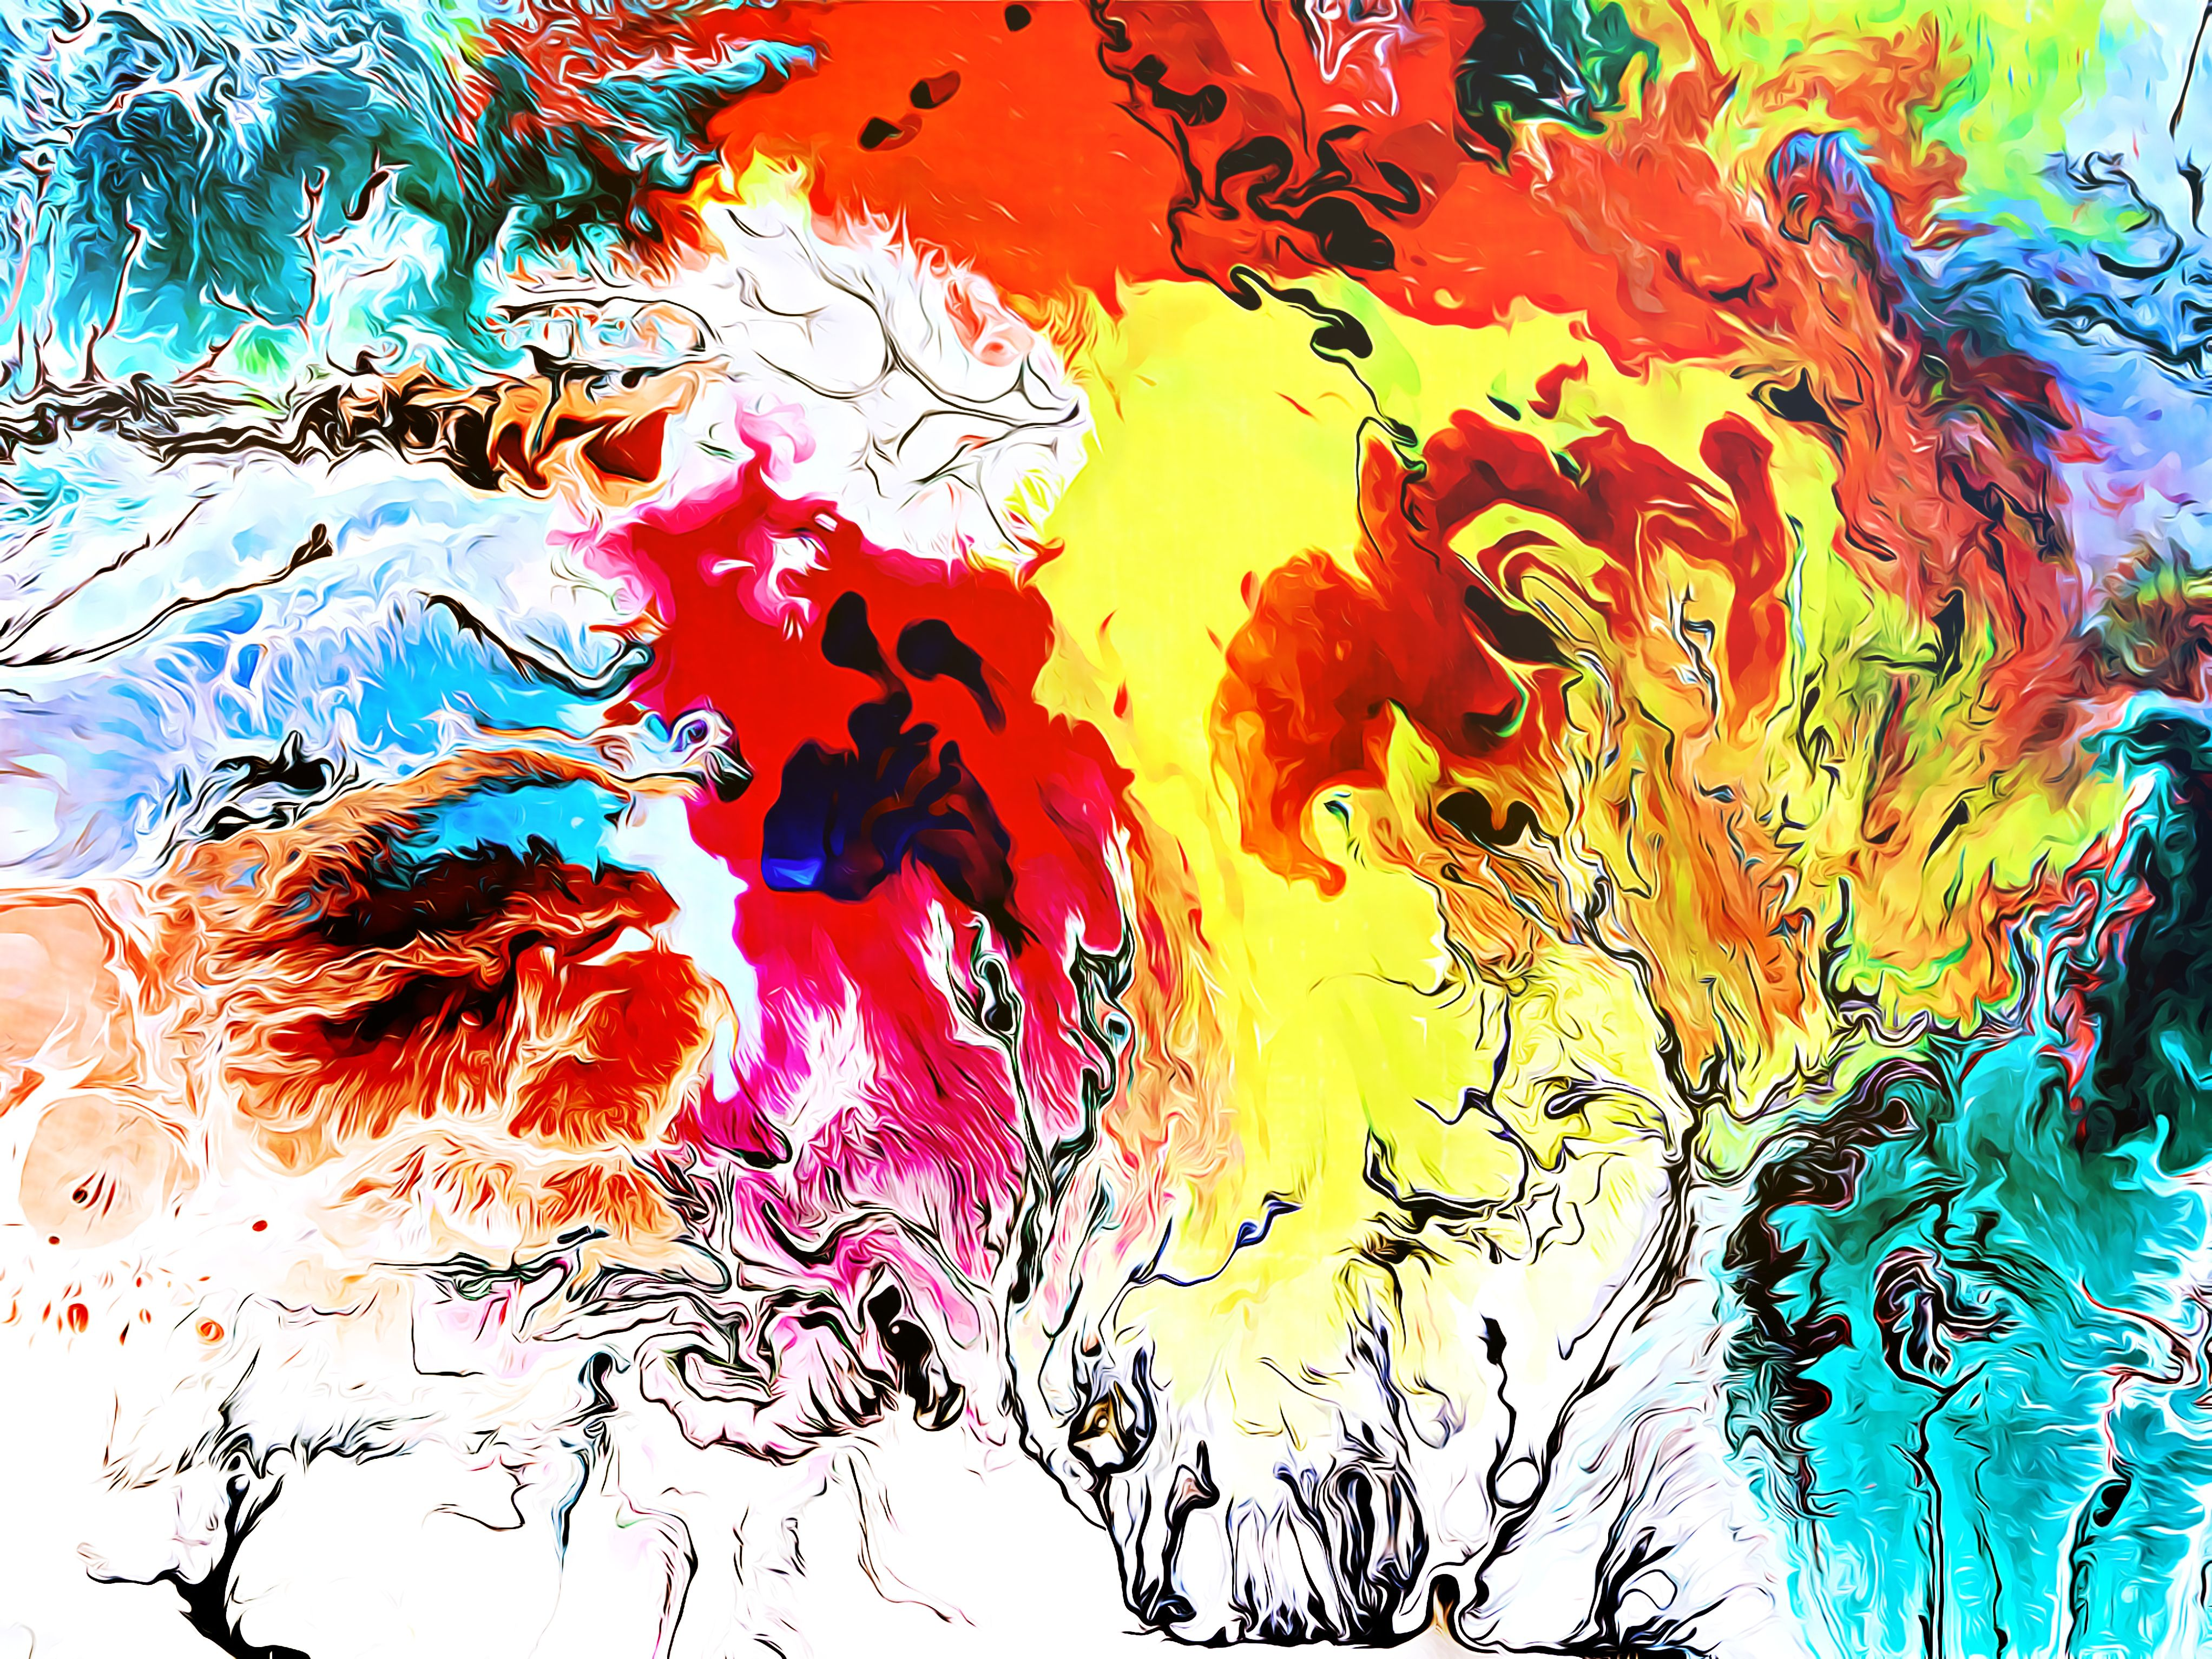 Modern Expressionism Abstract Painting [Acrylic Wall Art